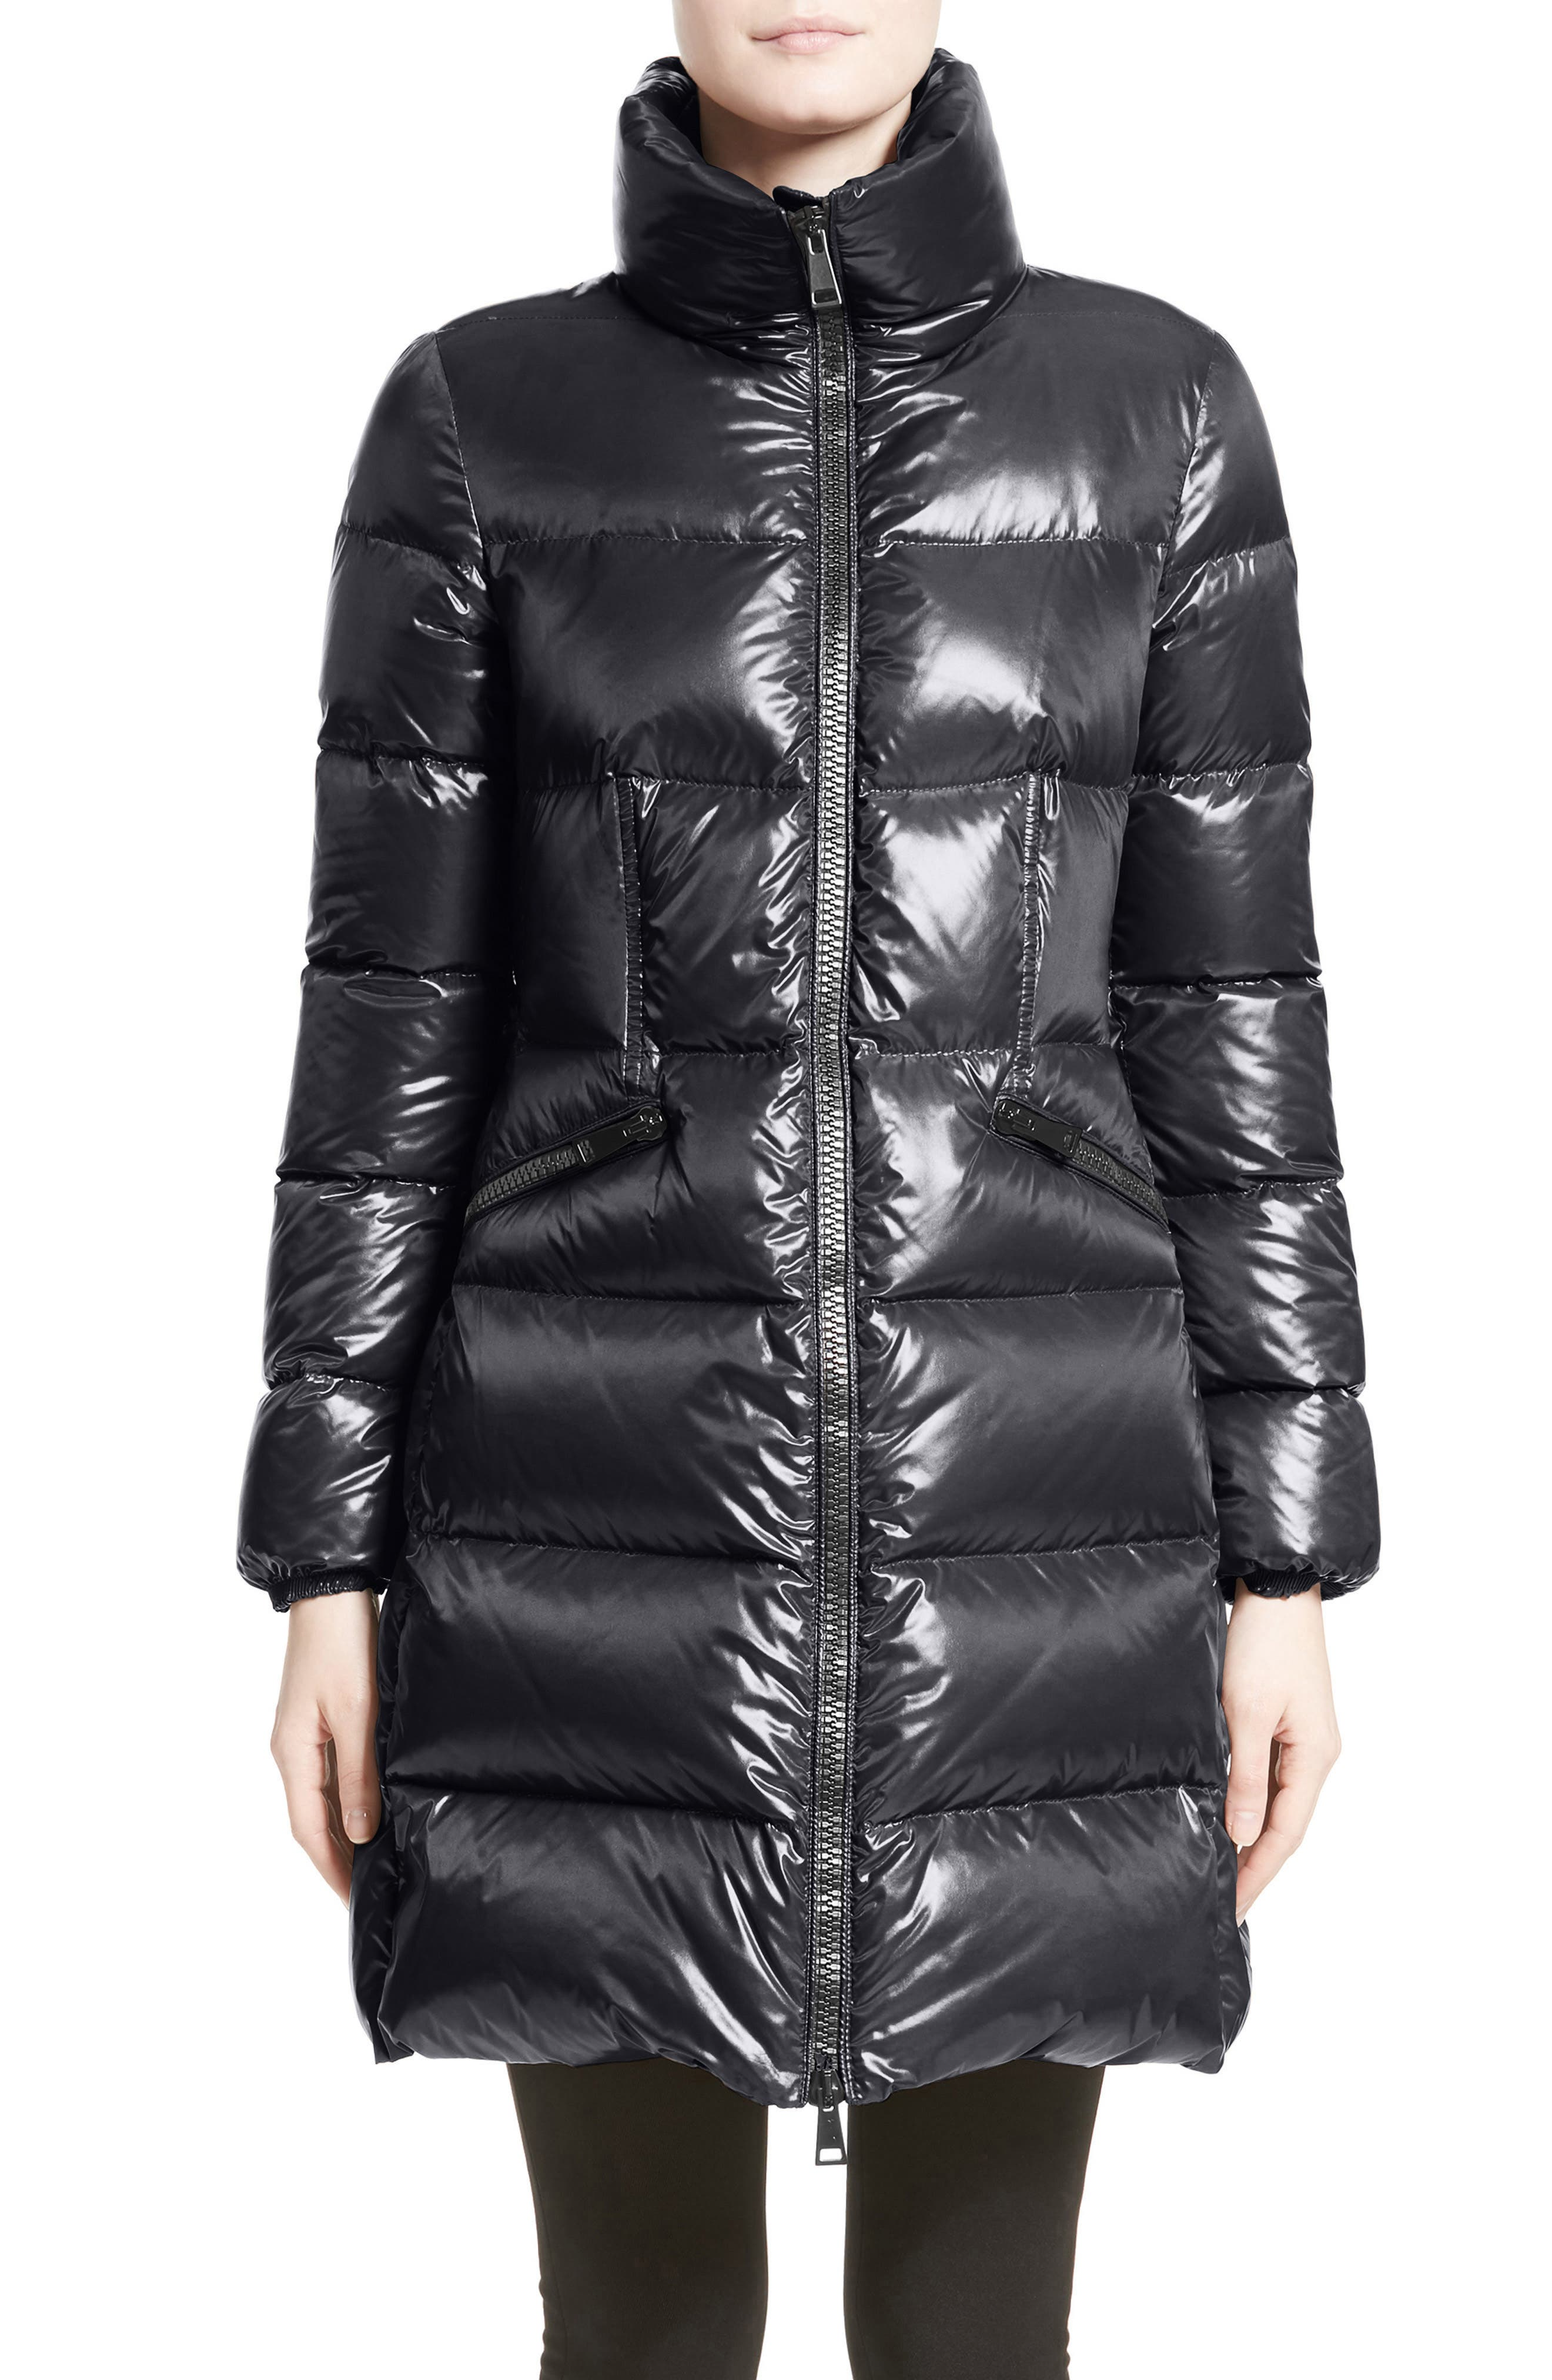 Moncler Jackets for Women | Nordstrom